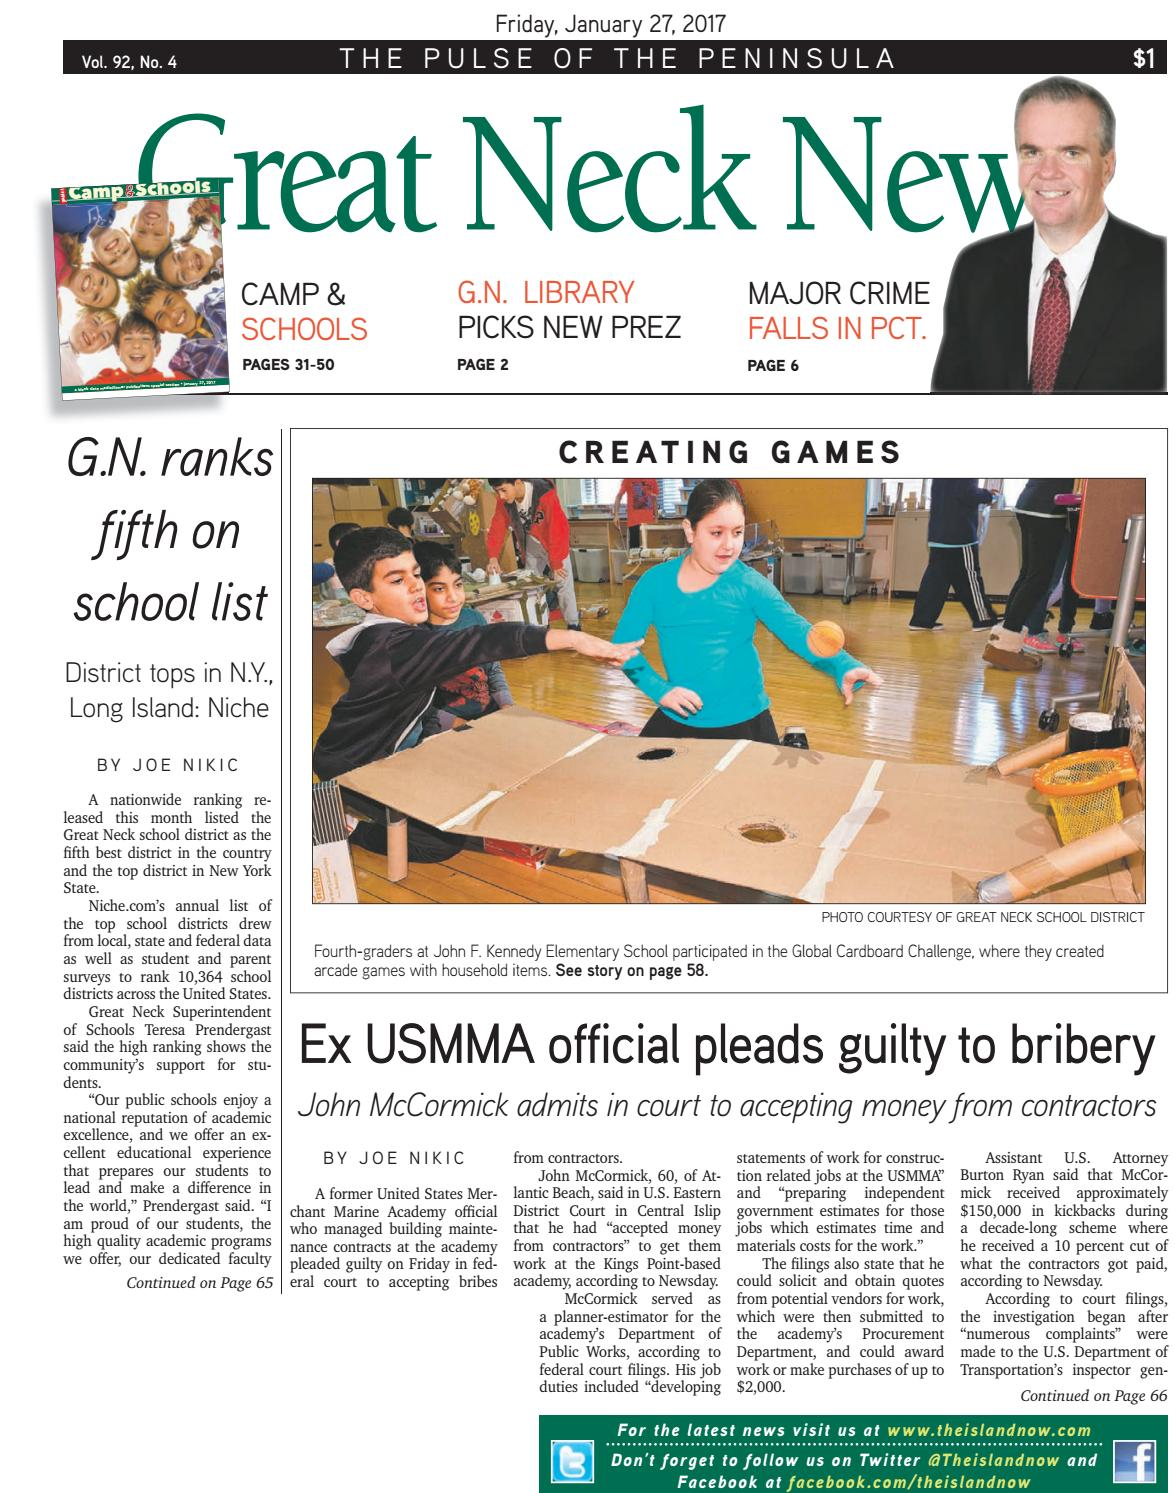 Great neck news 12717 by The Island Now - issuu